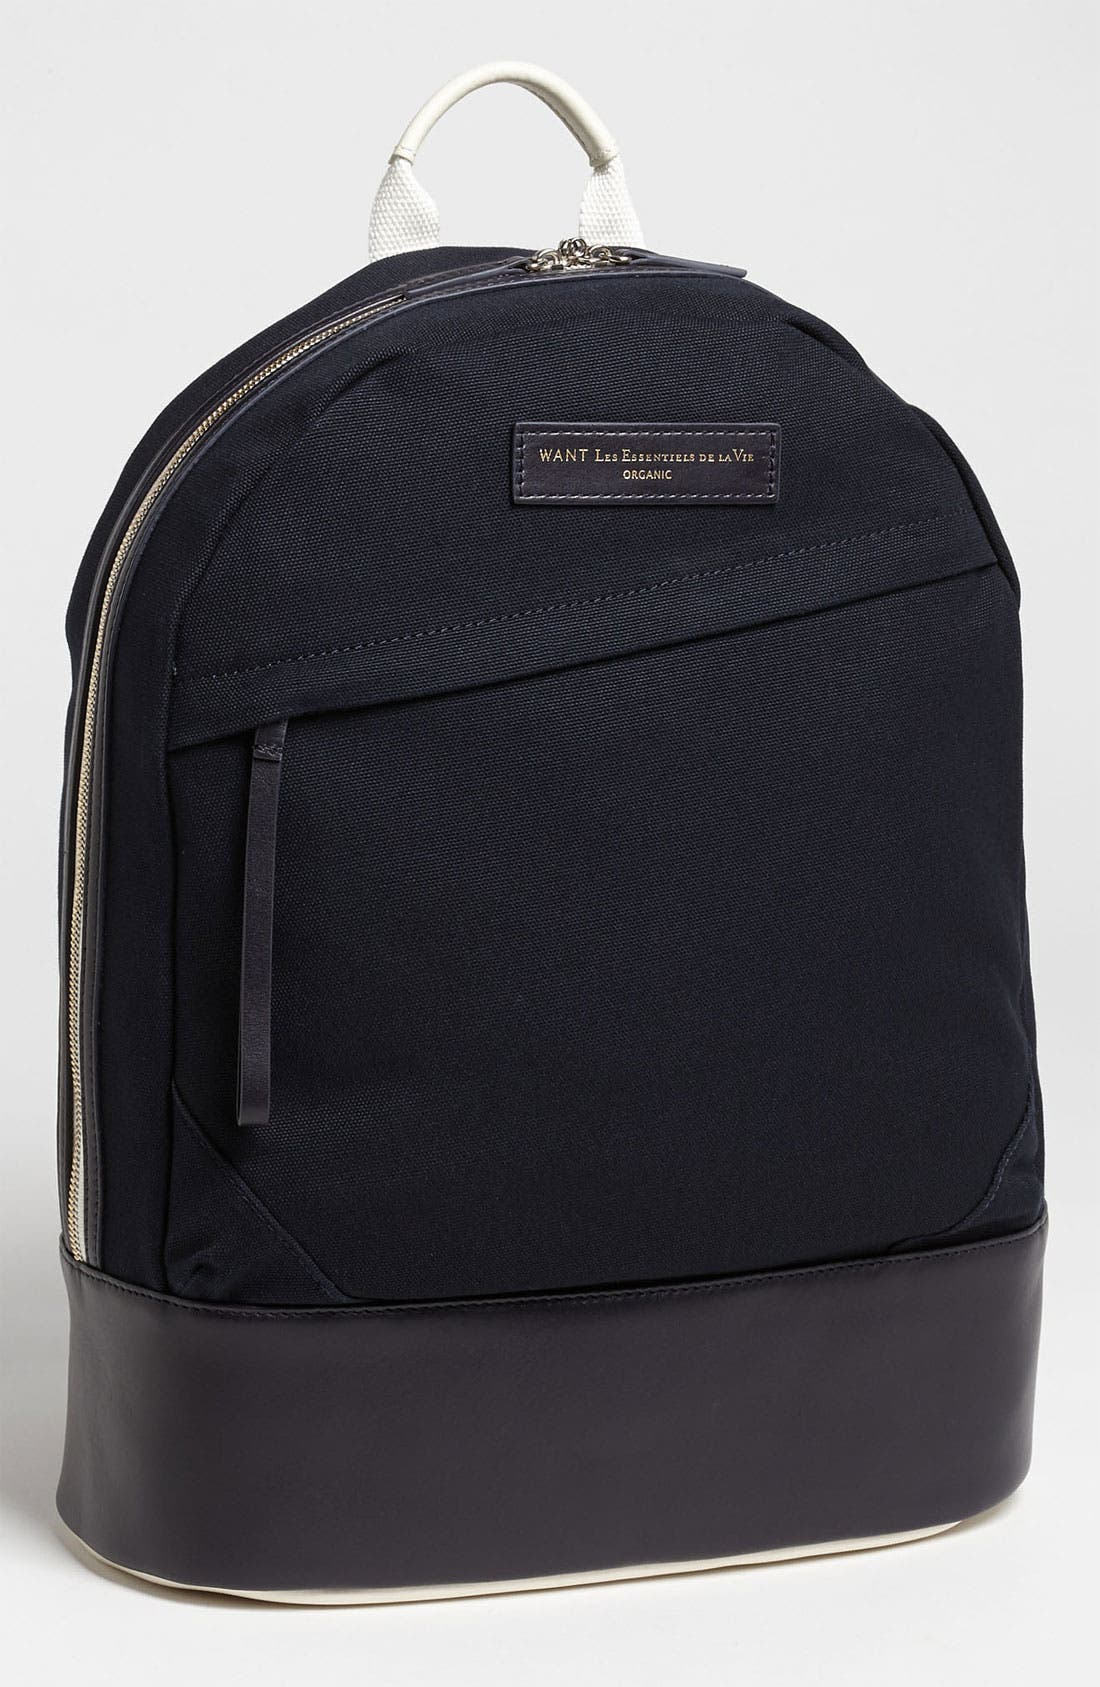 Main Image - WANT Les Essentiels de la Vie 'Kastrup' Backpack